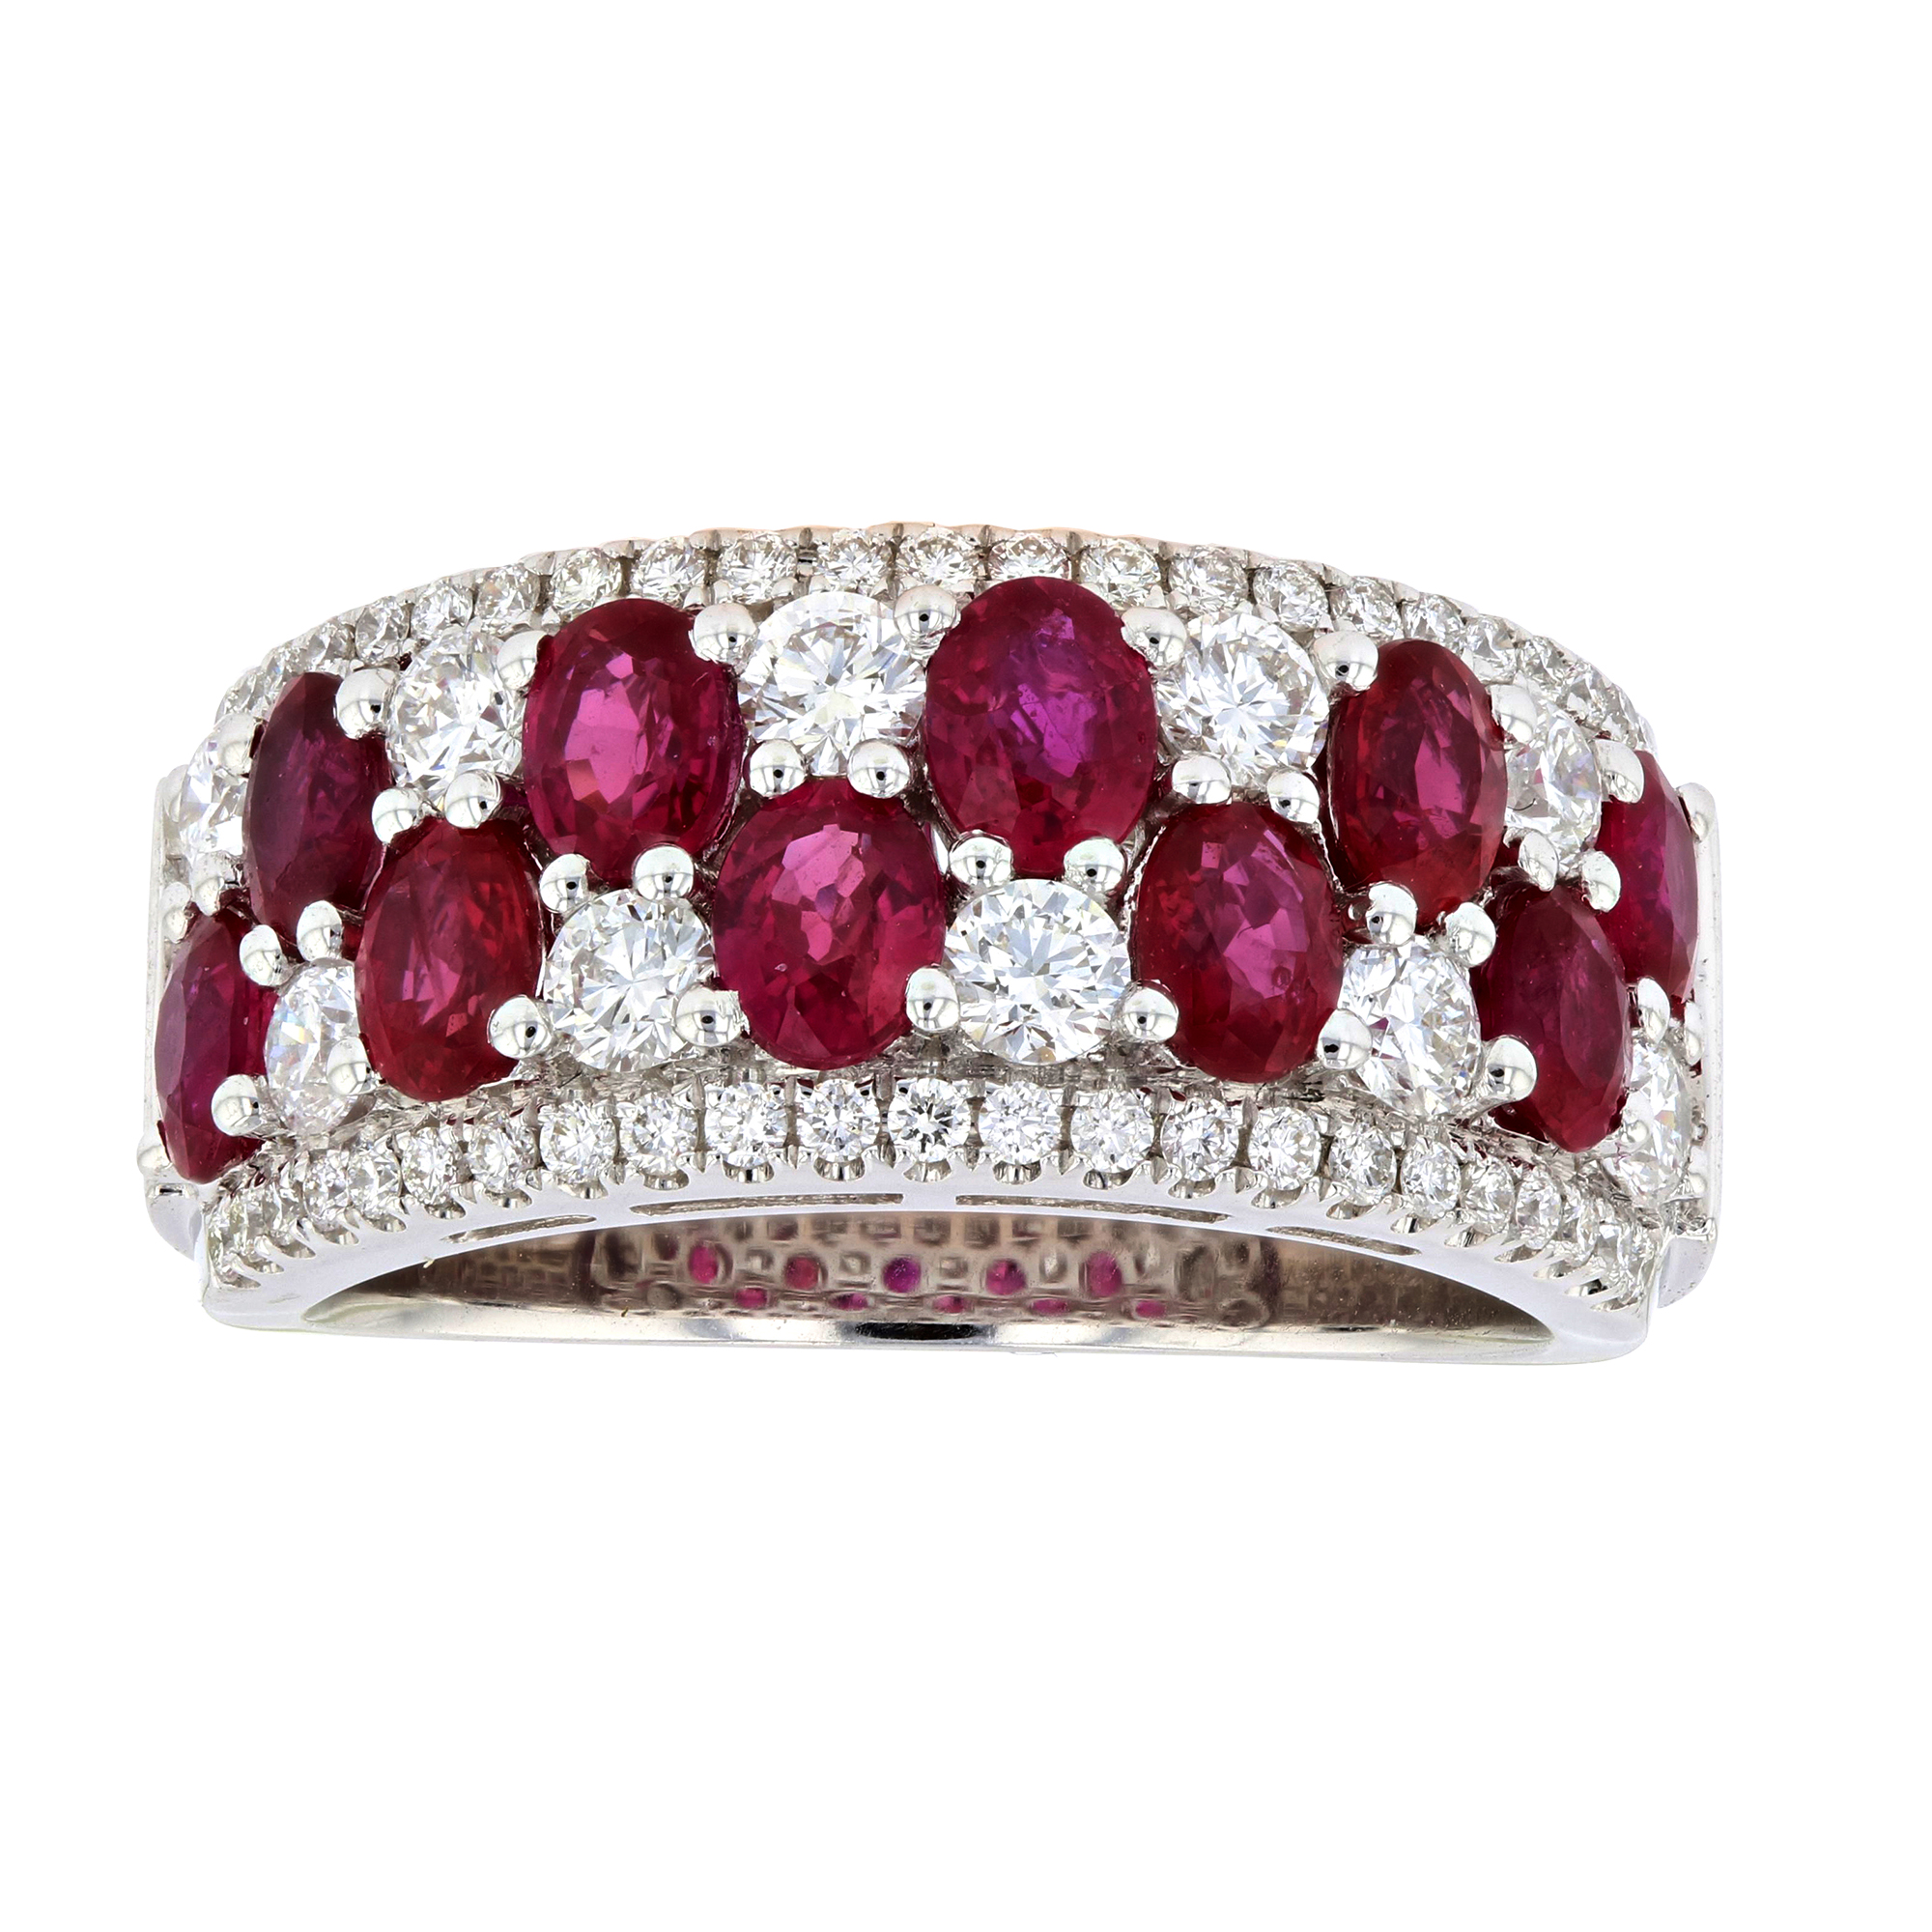 View 3.51ctw Diamond and Ruby Ring in 18k White Gold